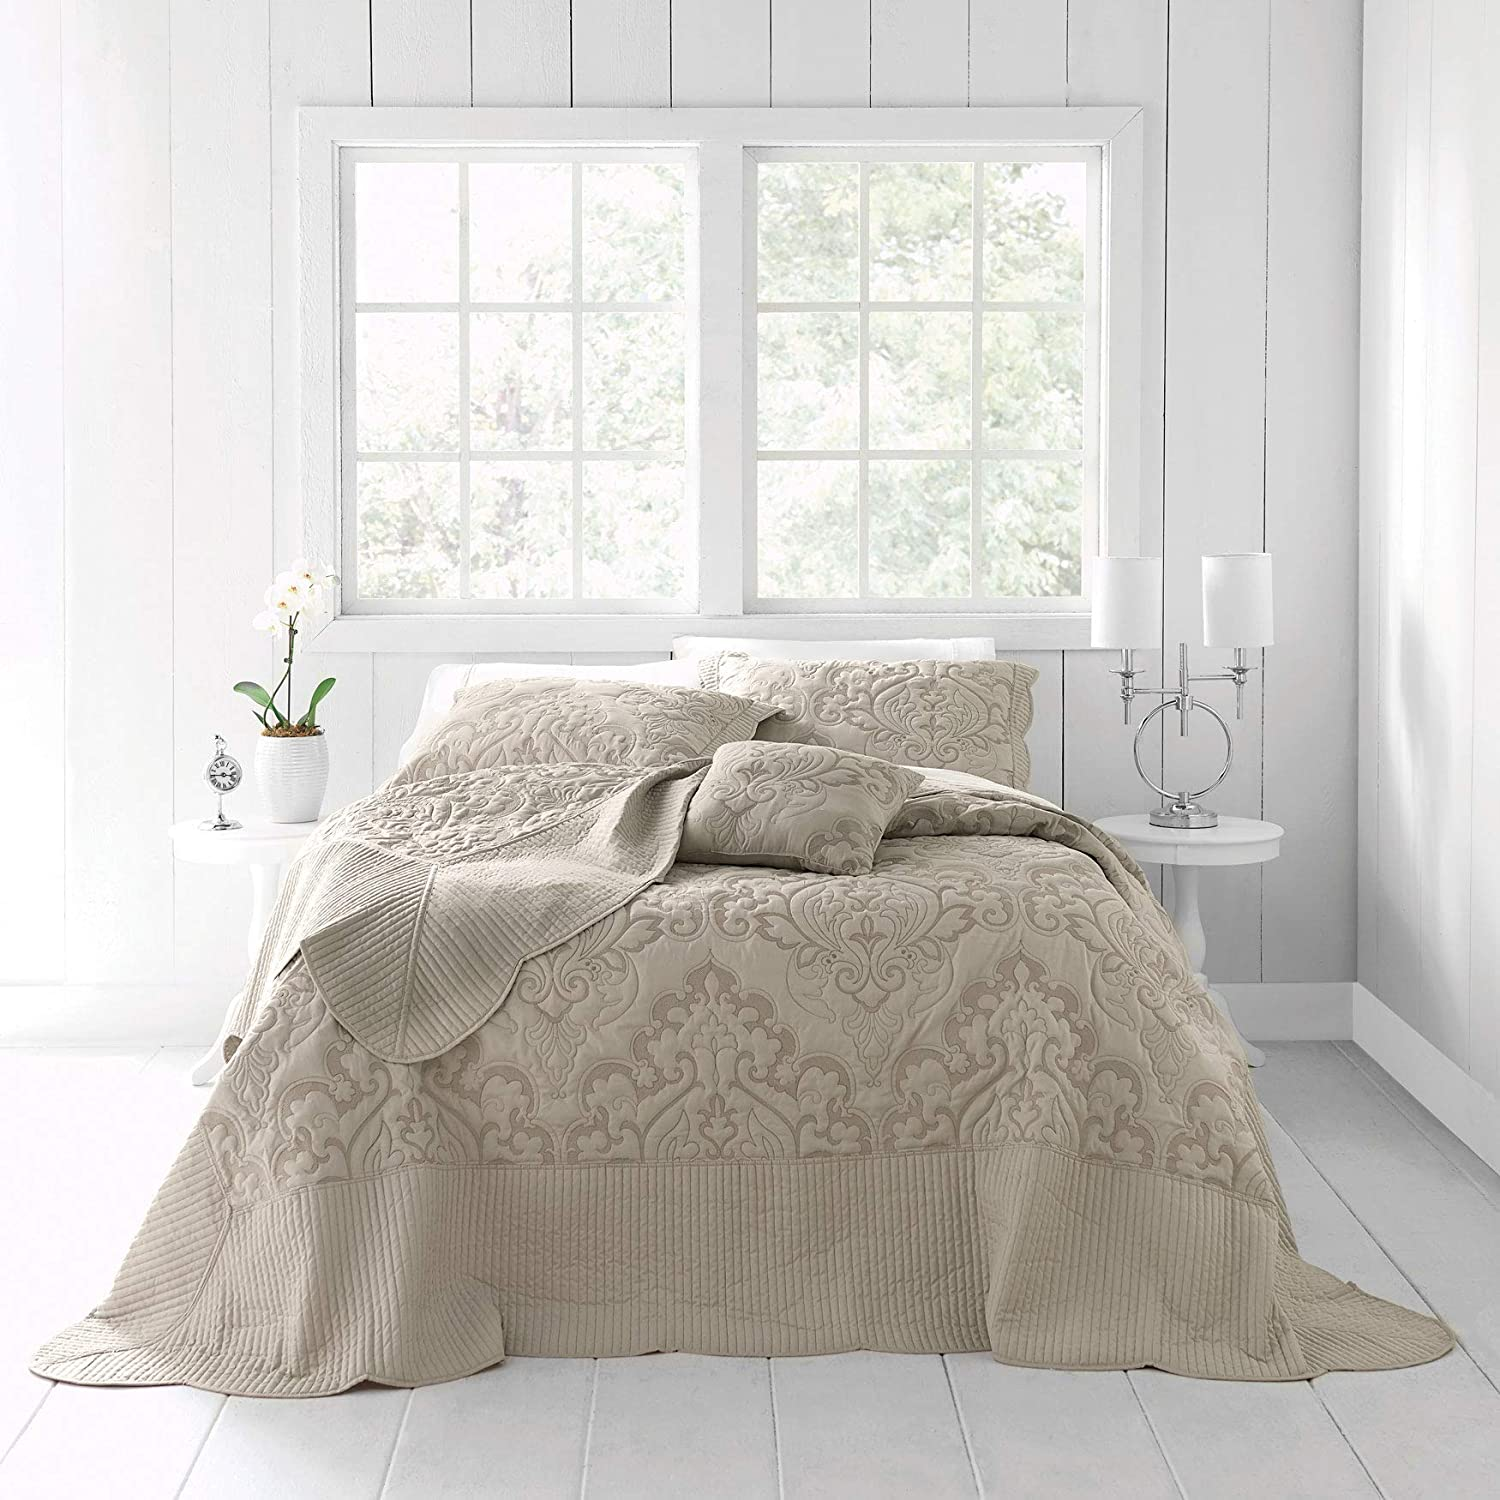 BrylaneHome Amelia Bedspread - Queen, Taupe